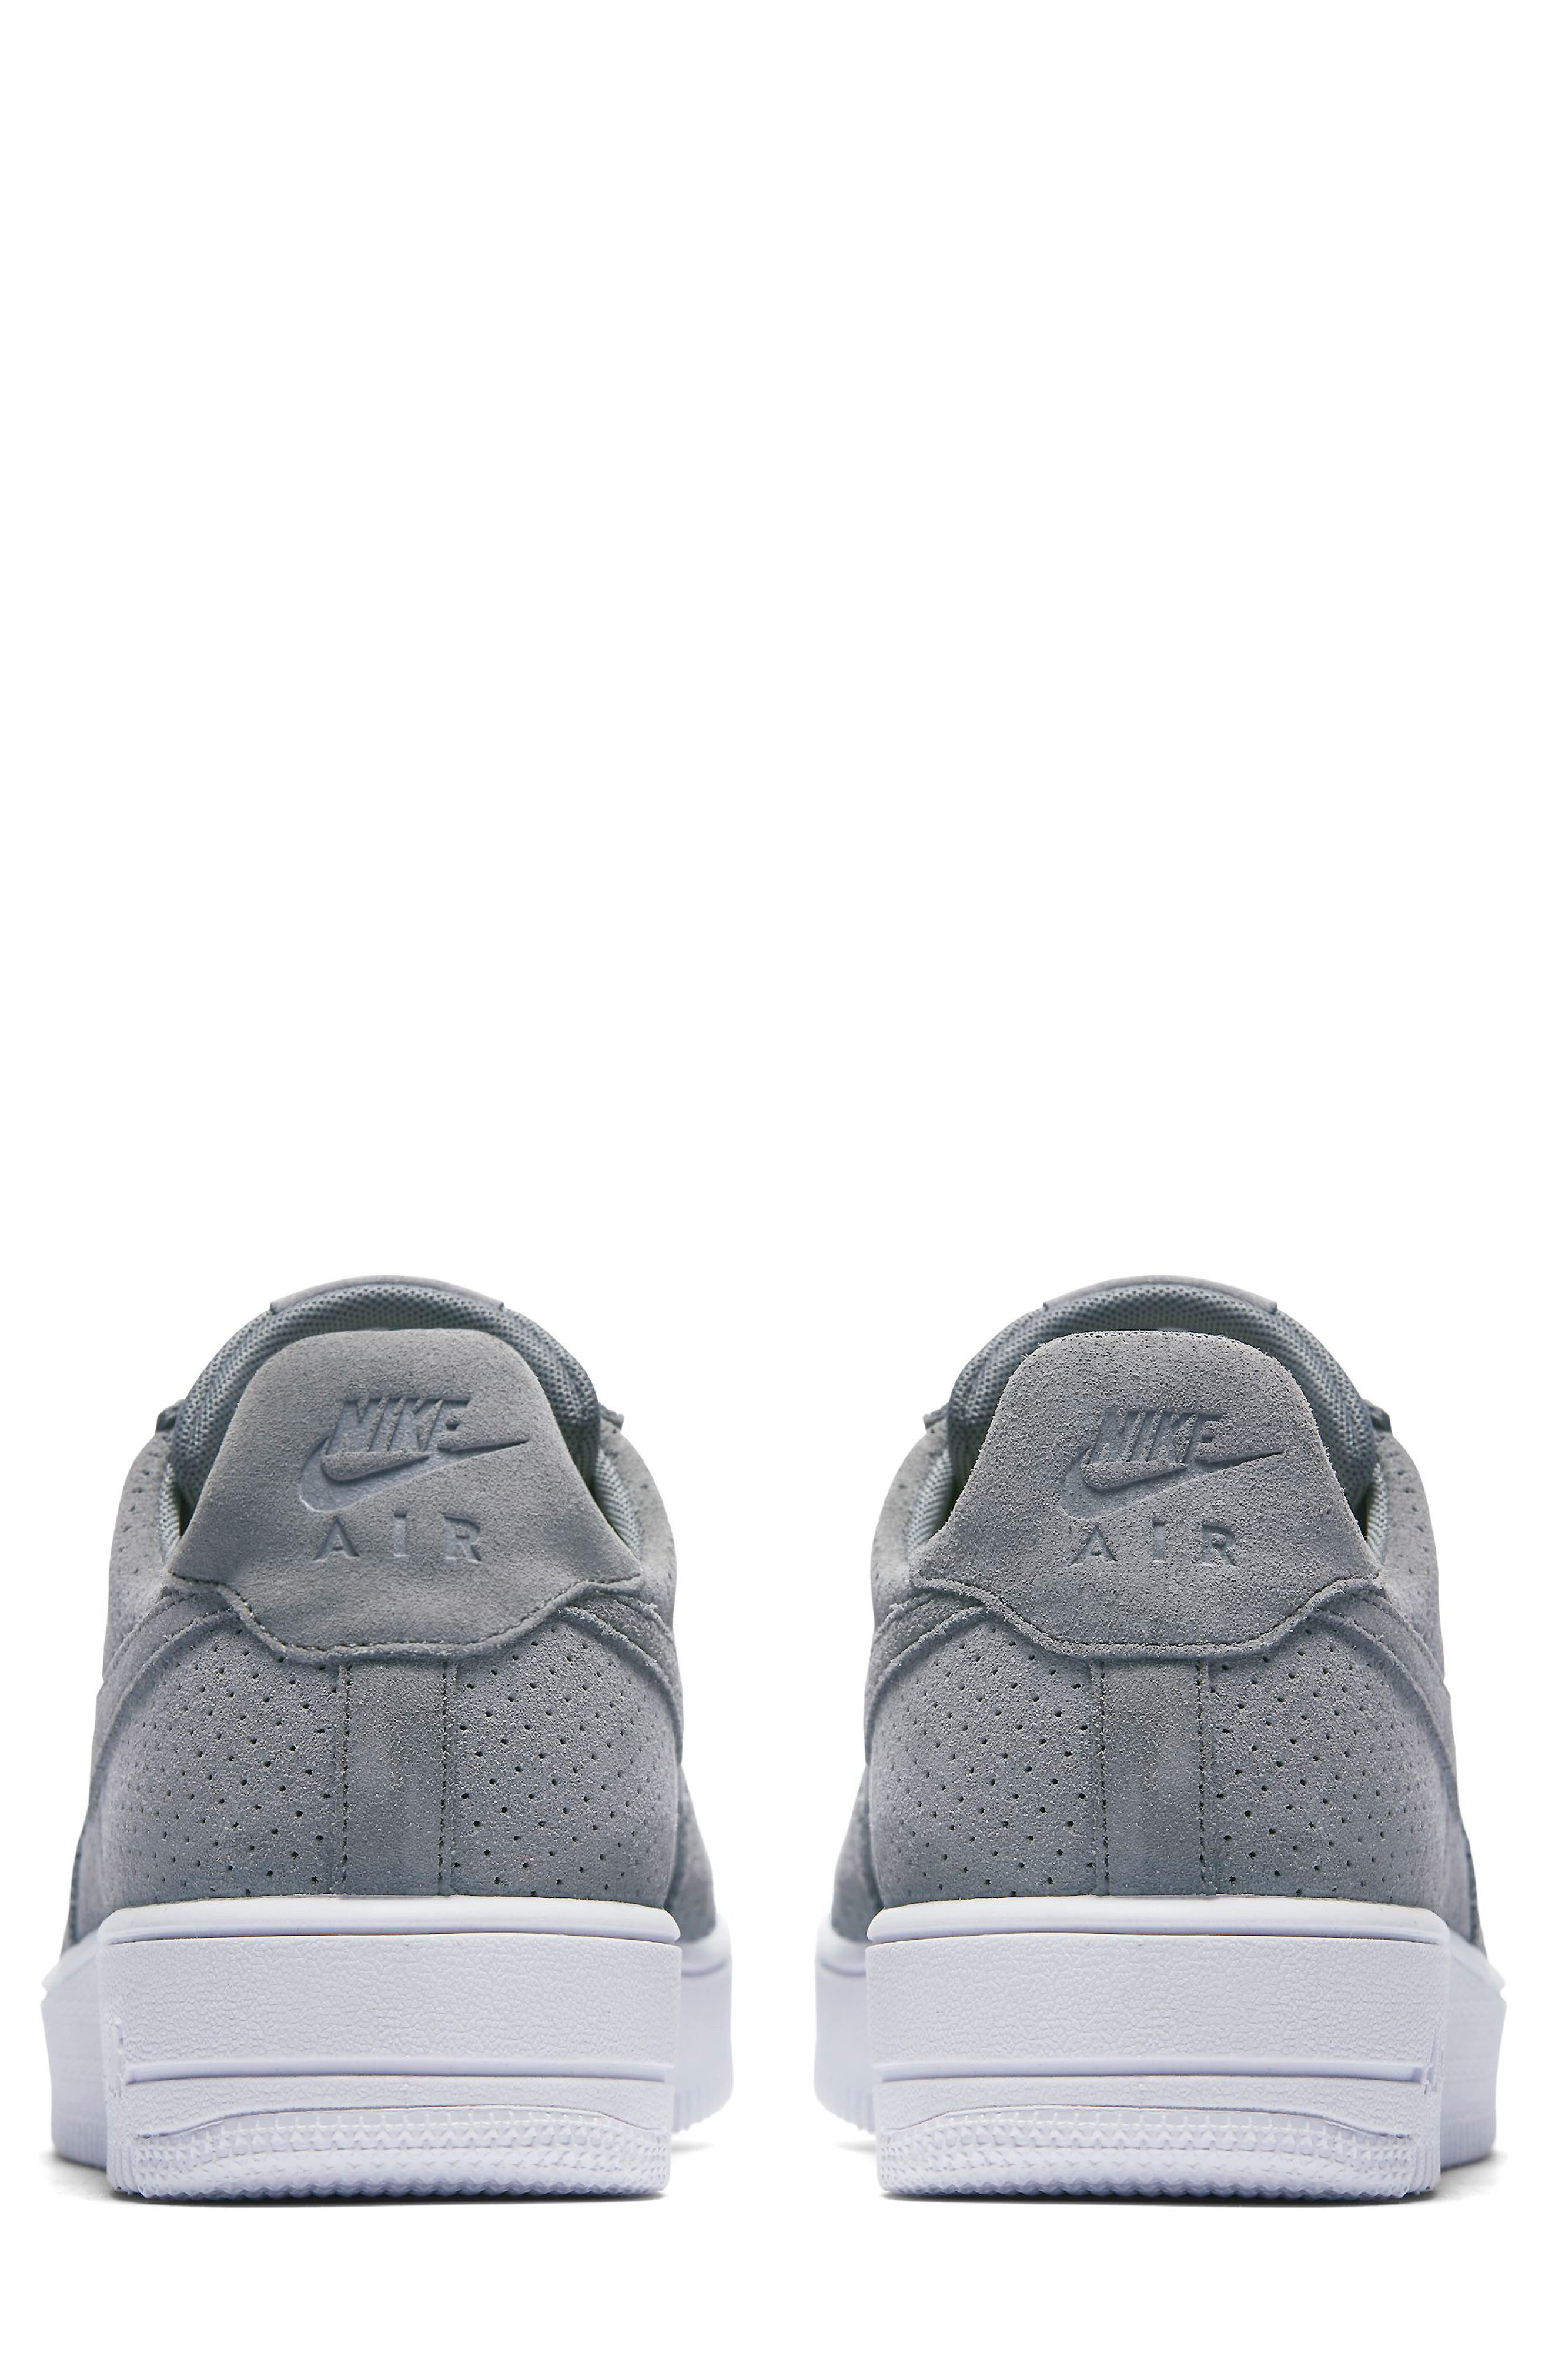 Air Force 1 Ultraforce Sneaker,                             Alternate thumbnail 4, color,                             Cool Grey/ White